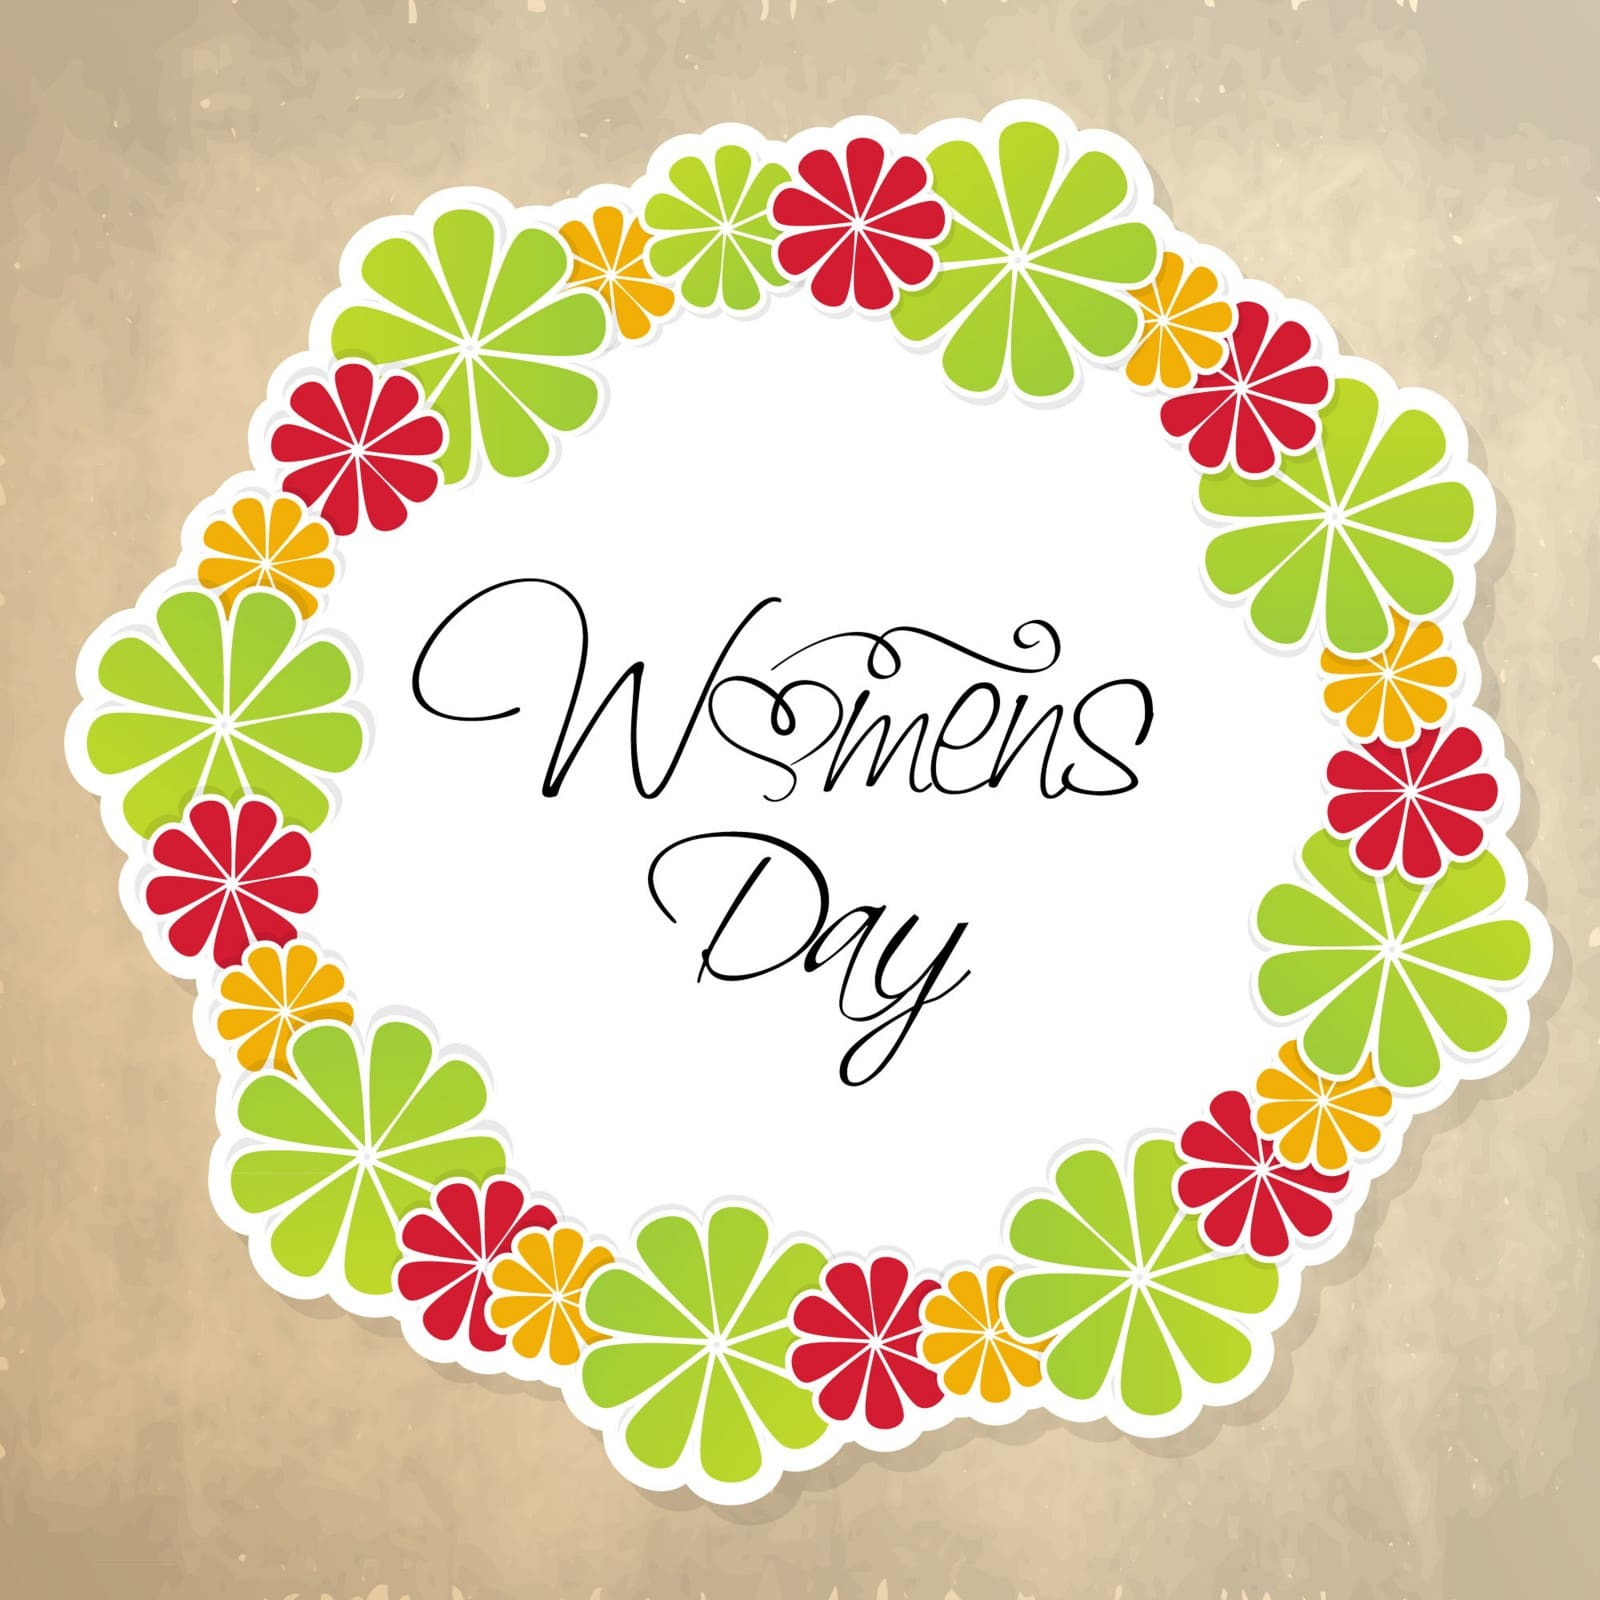 Women's Day 2017 Greeting Cards